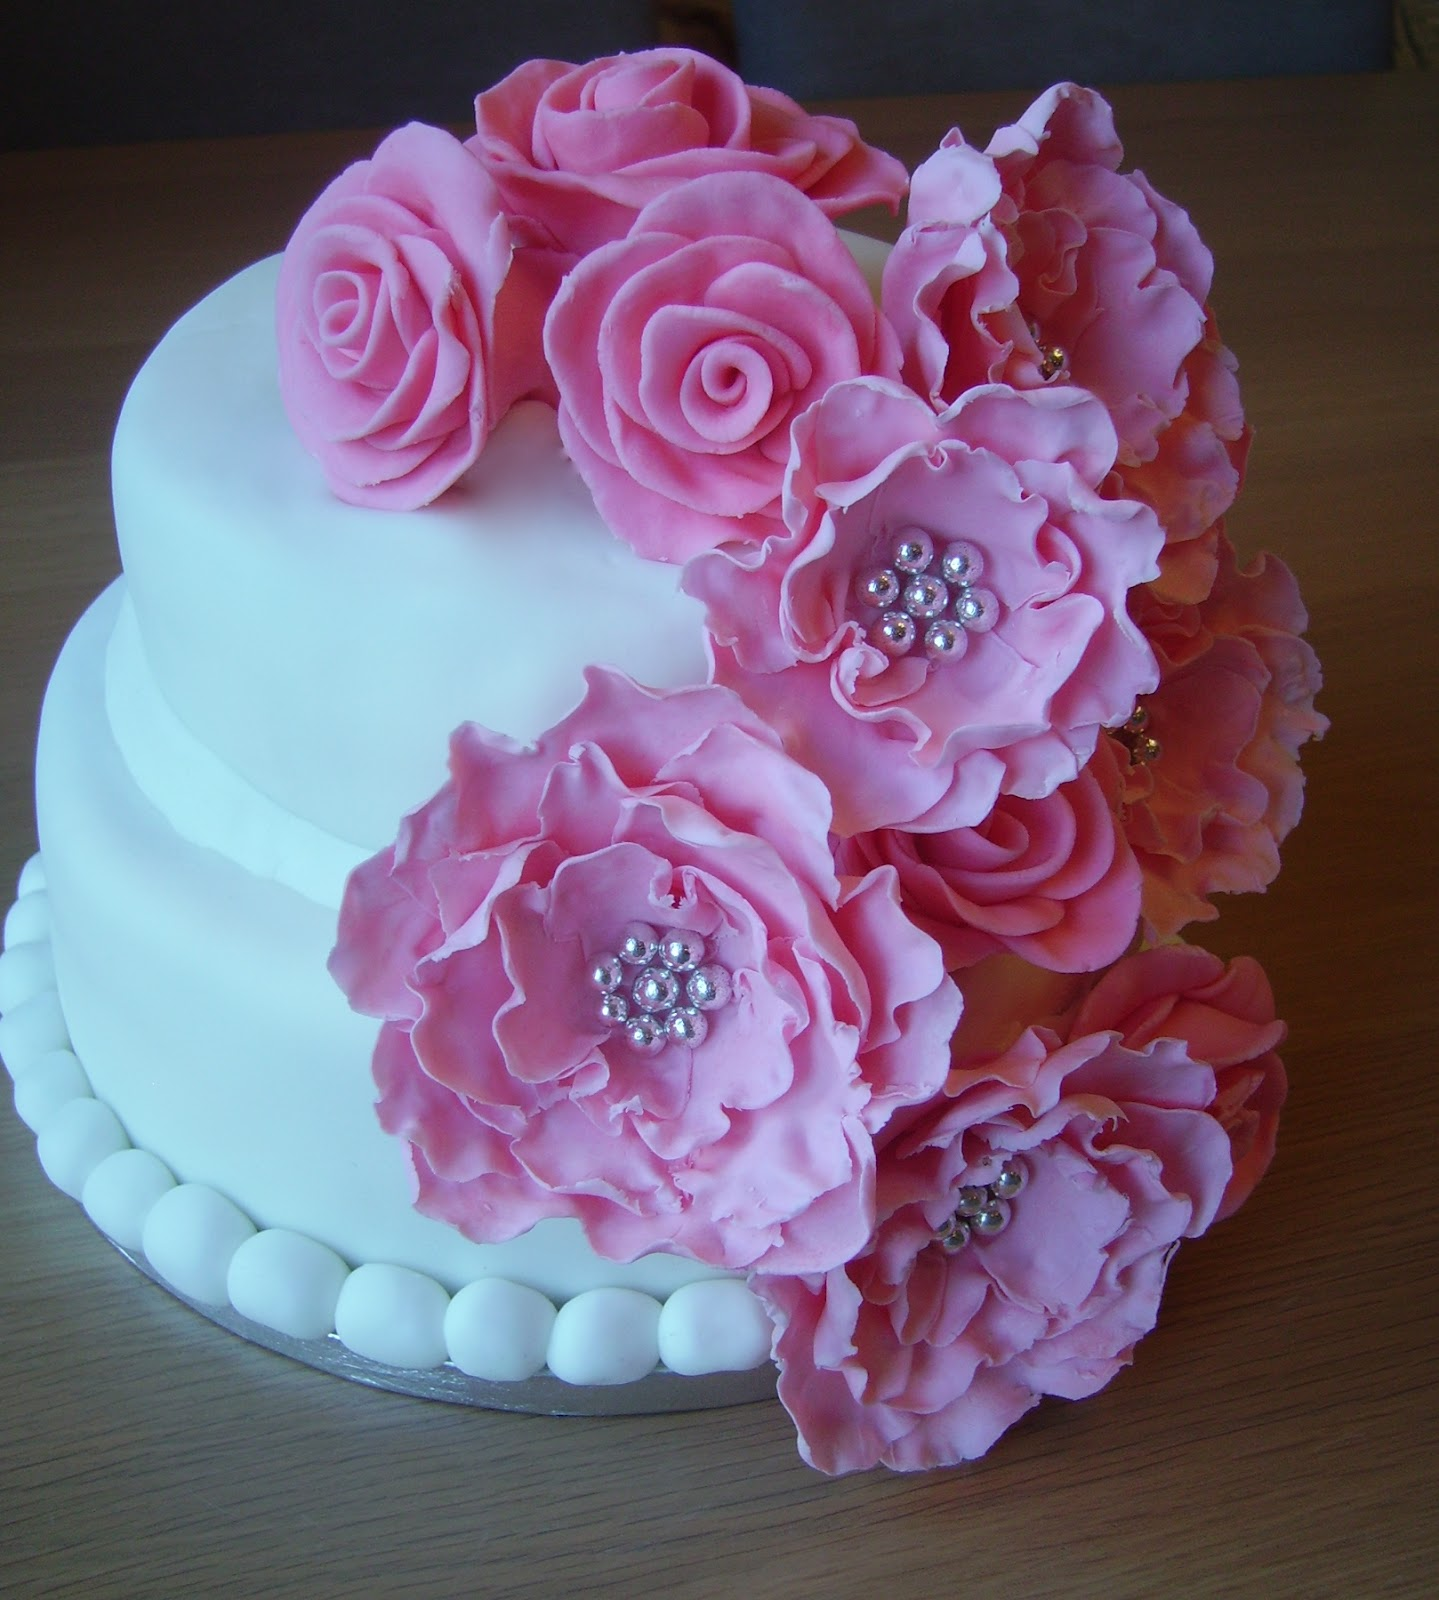 9 Elegant White And Pink Flower Cakes Photo Beautiful Pink And